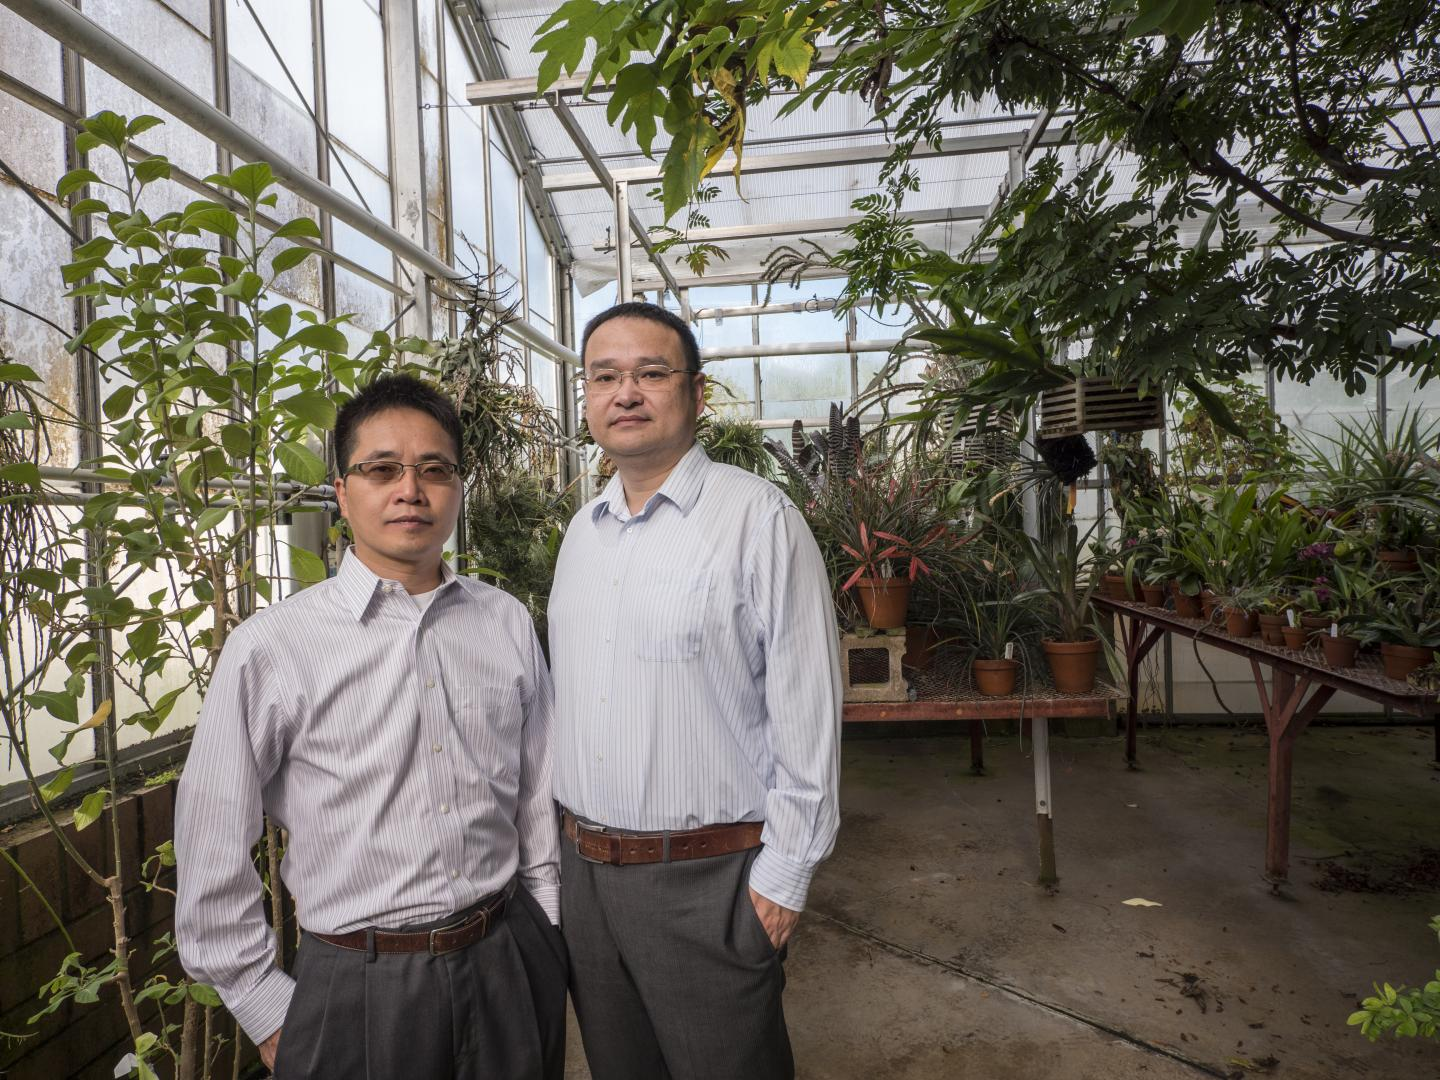 Light-Splitting Greenhouse Film Could Improve Photosynthetic Efficiency